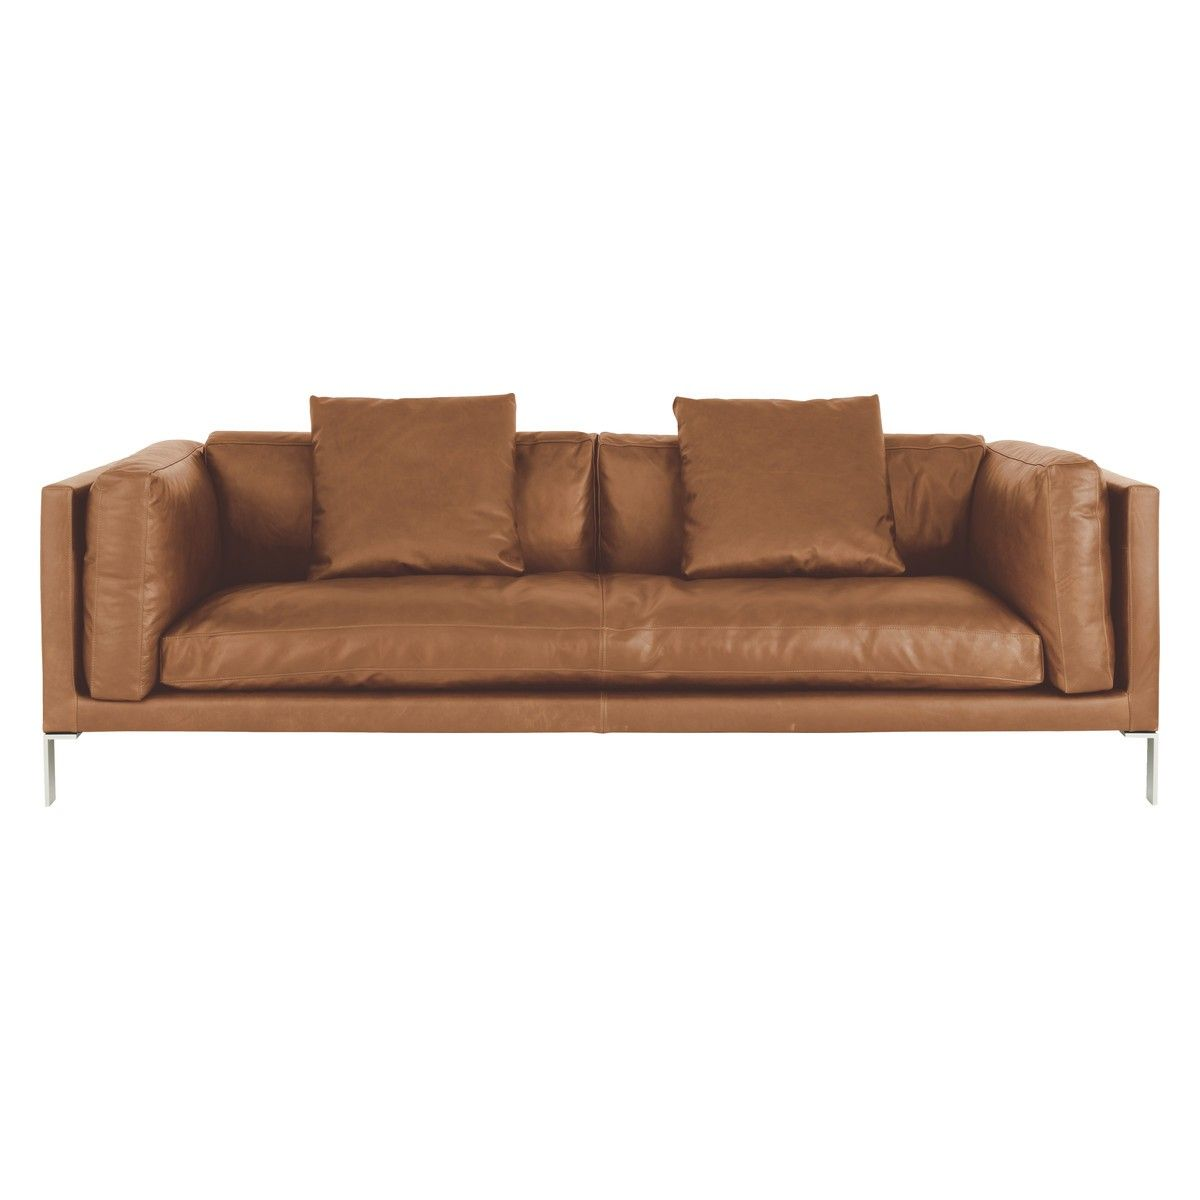 NEWMAN Mid-tan leather 3 seater sofa | Buy now at Habitat UK ...